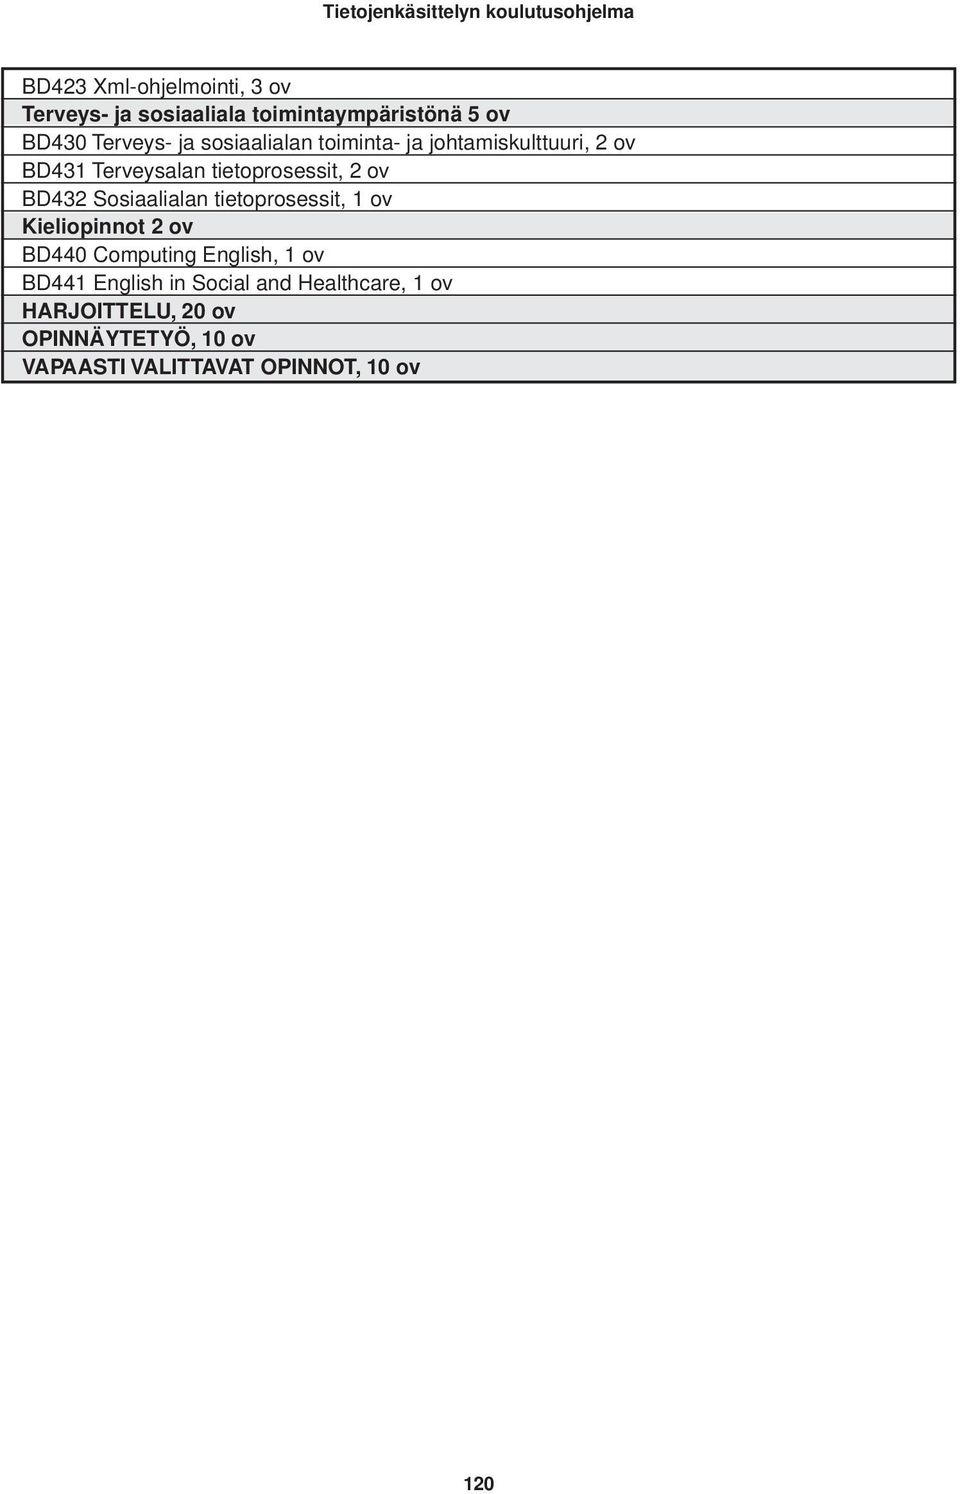 Sosiaalialan tietoprosessit, 1 ov Kieliopinnot 2 ov BD440 Computing English, 1 ov BD441 English in